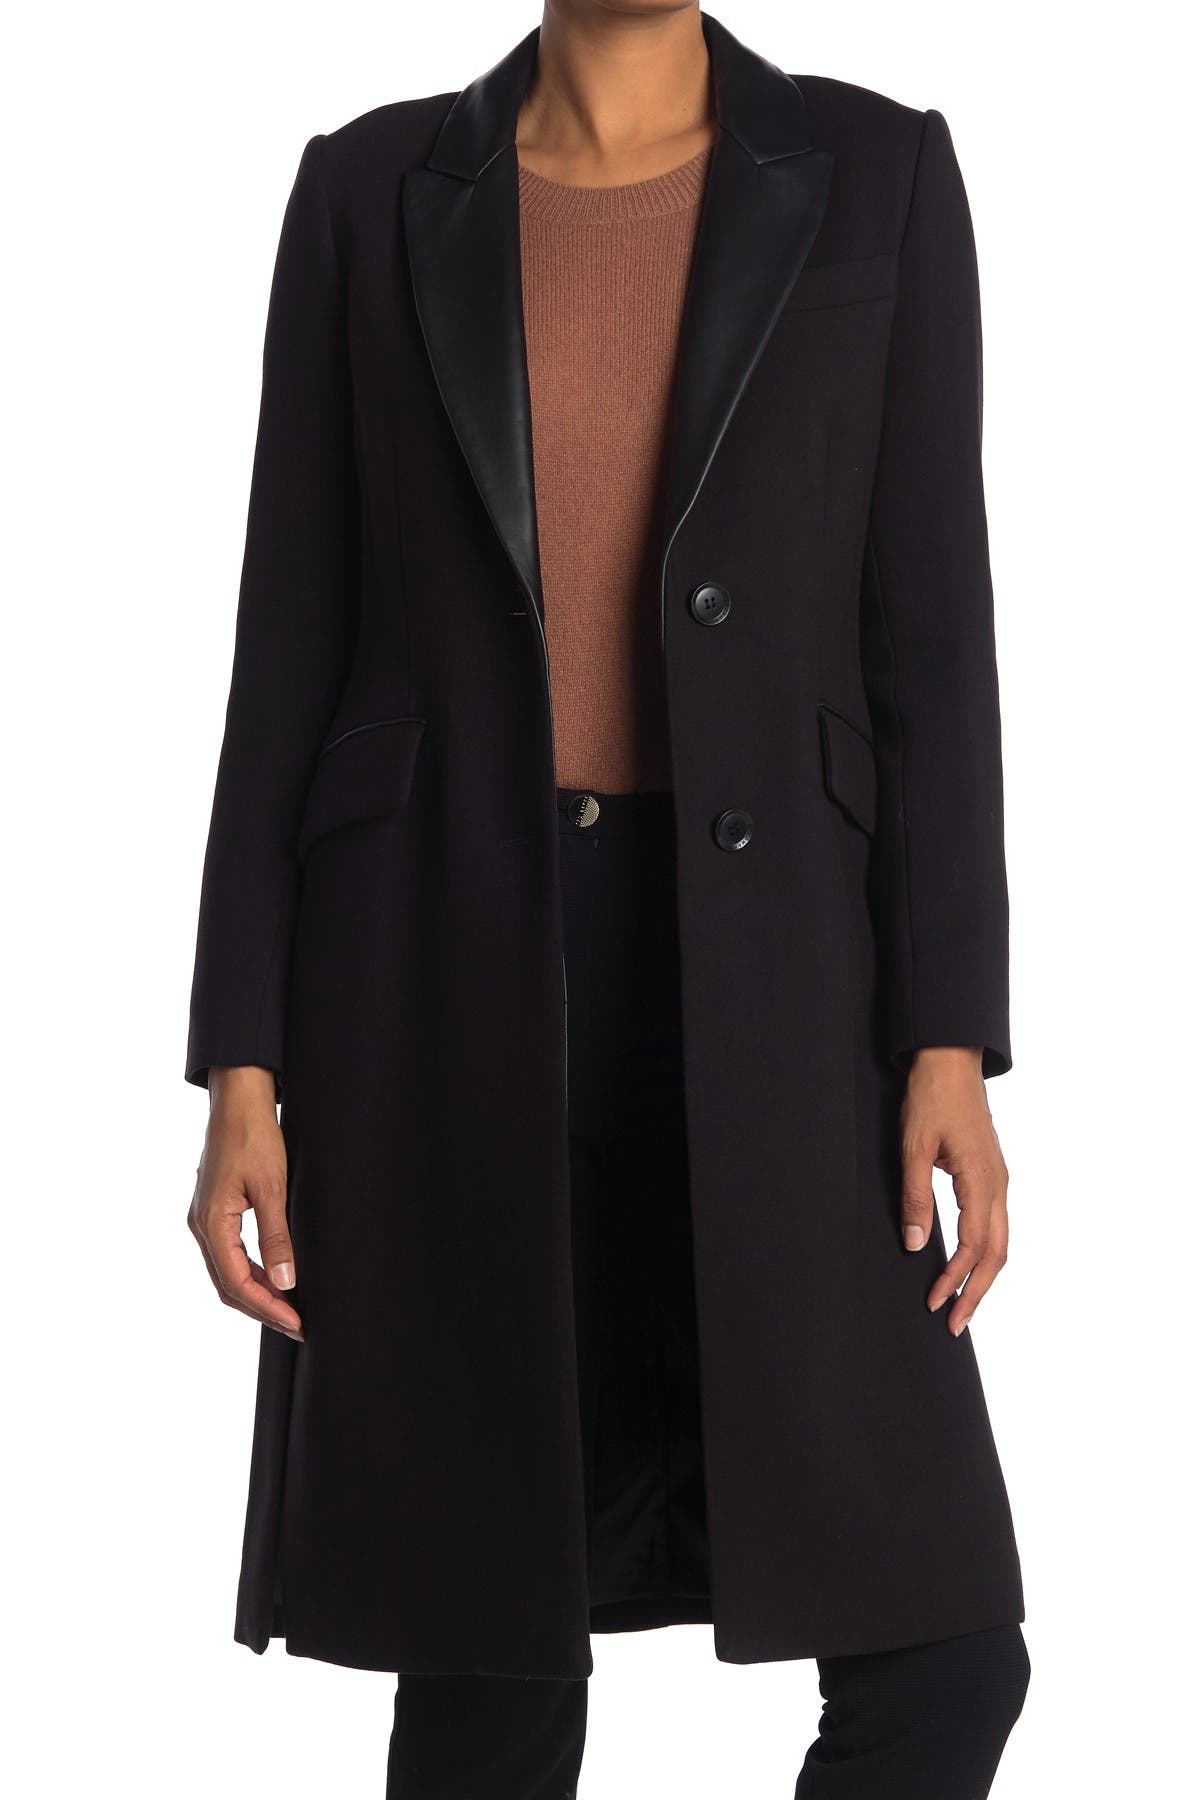 Image of BCBGMAXAZRIA Leather Trim Riding Coat